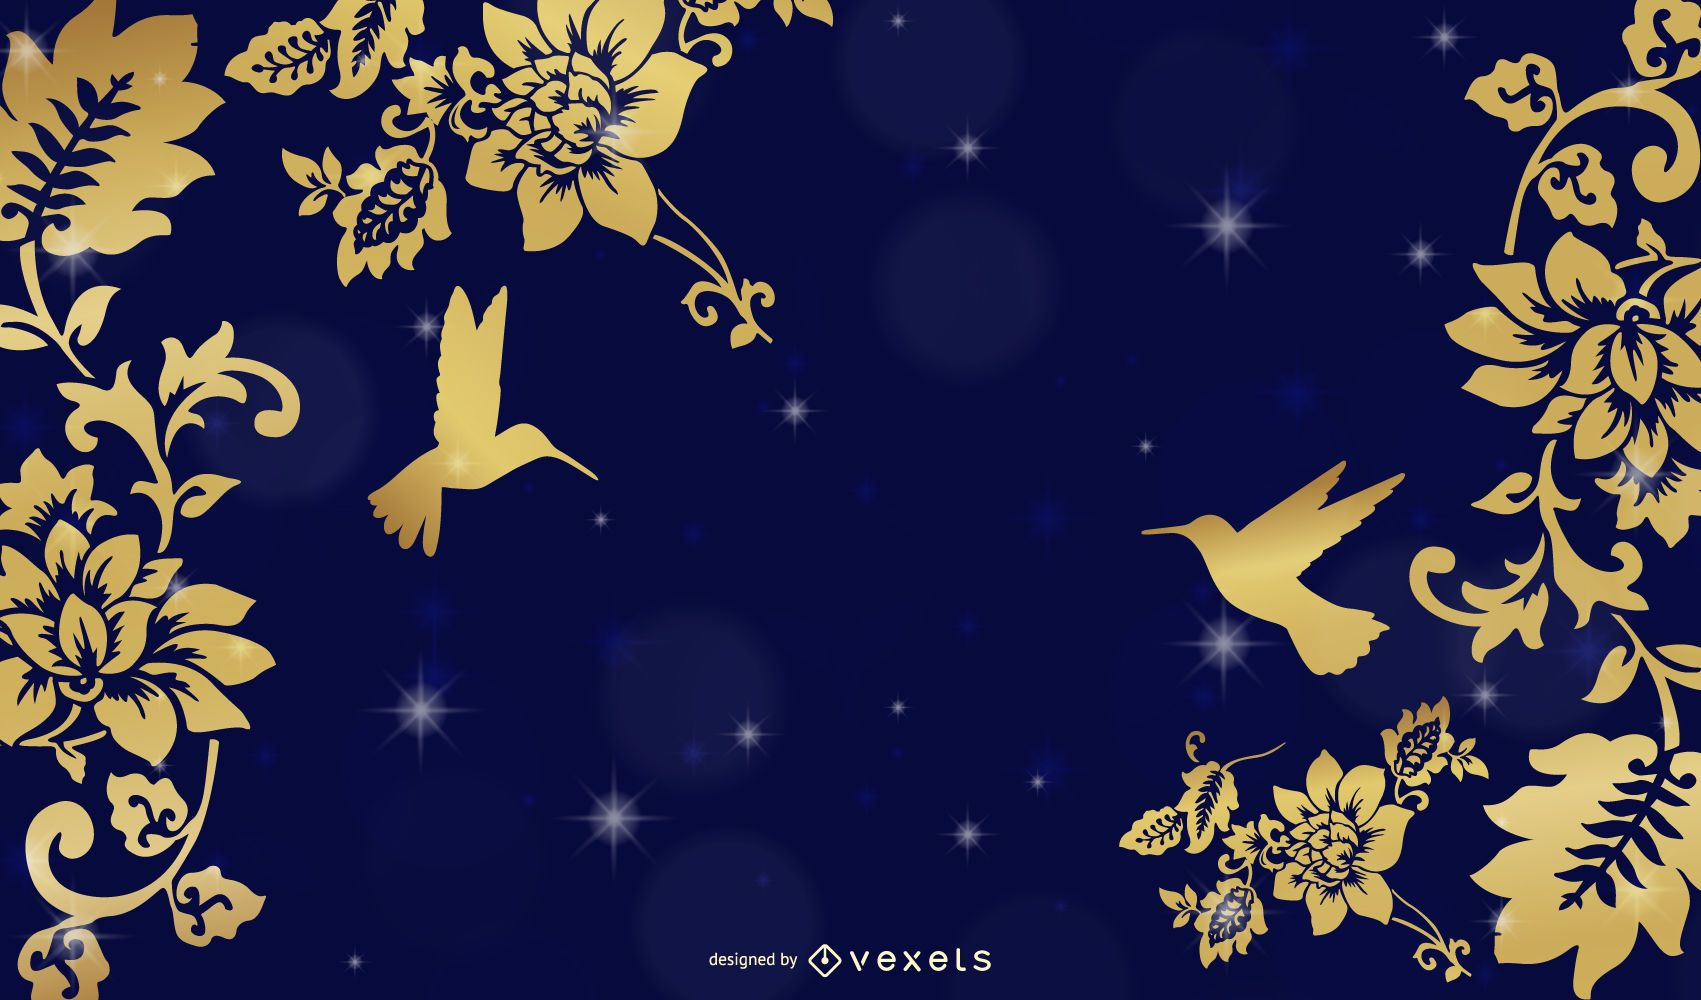 Golden flowers and birds background